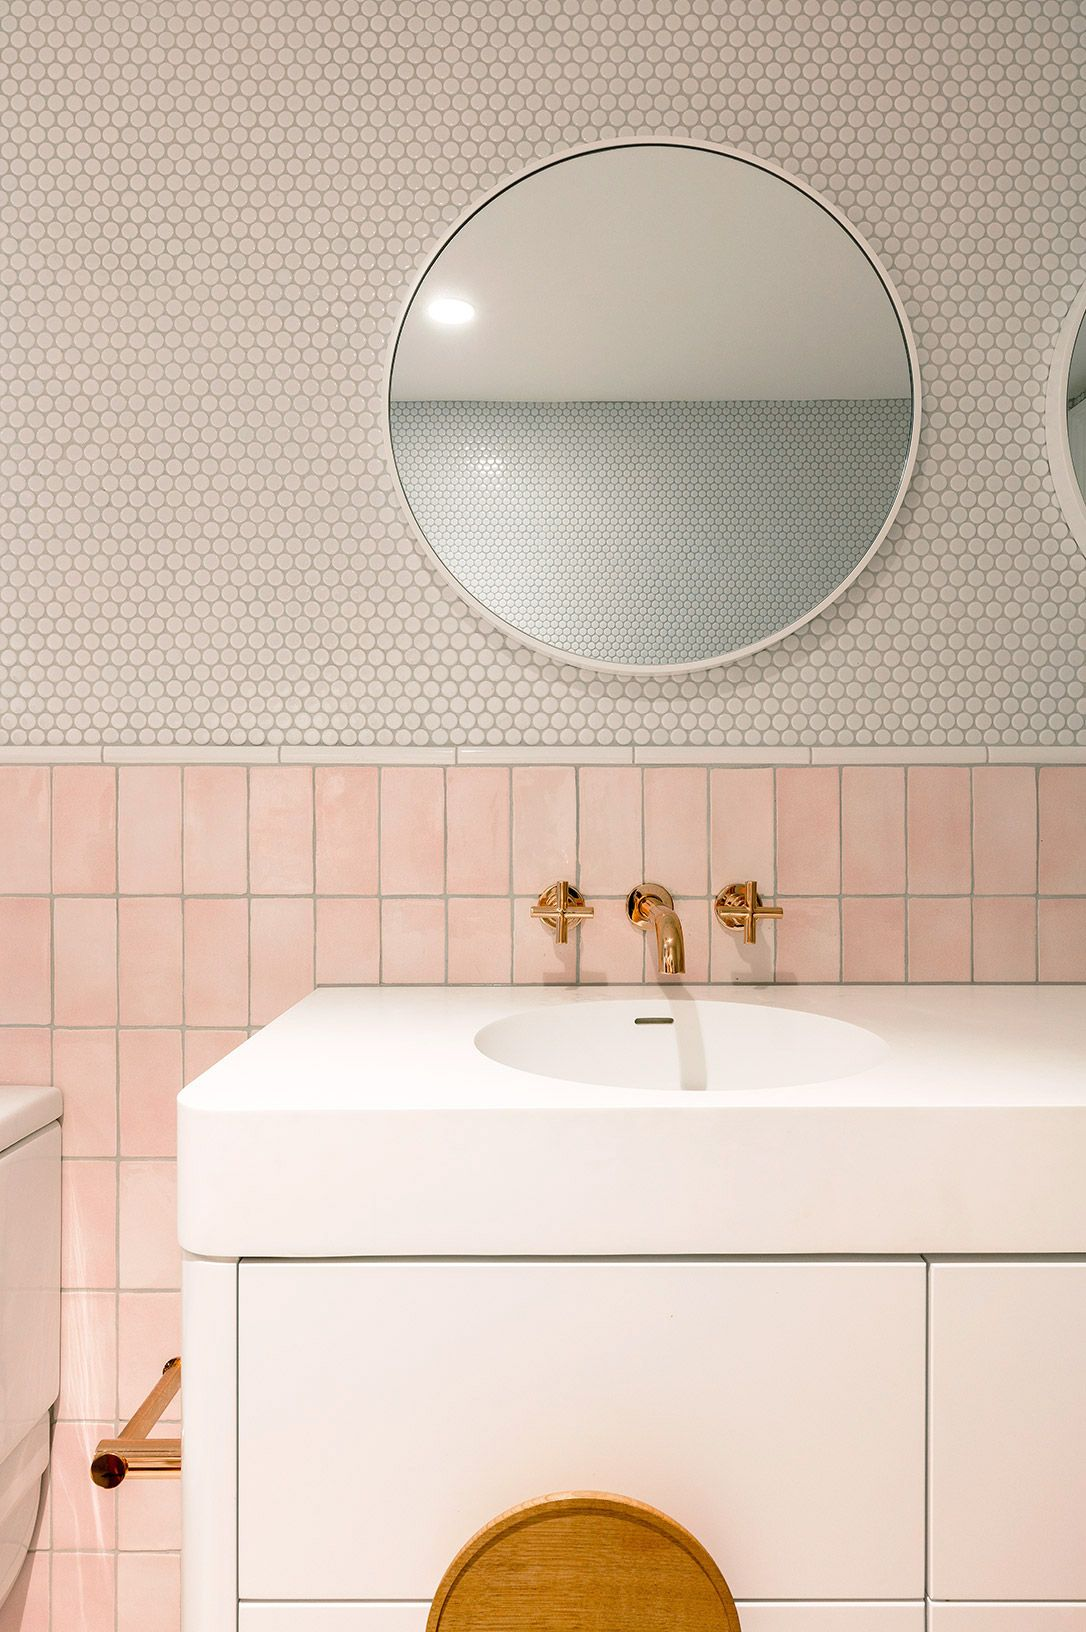 Get inspired by this small home project in bathrooms